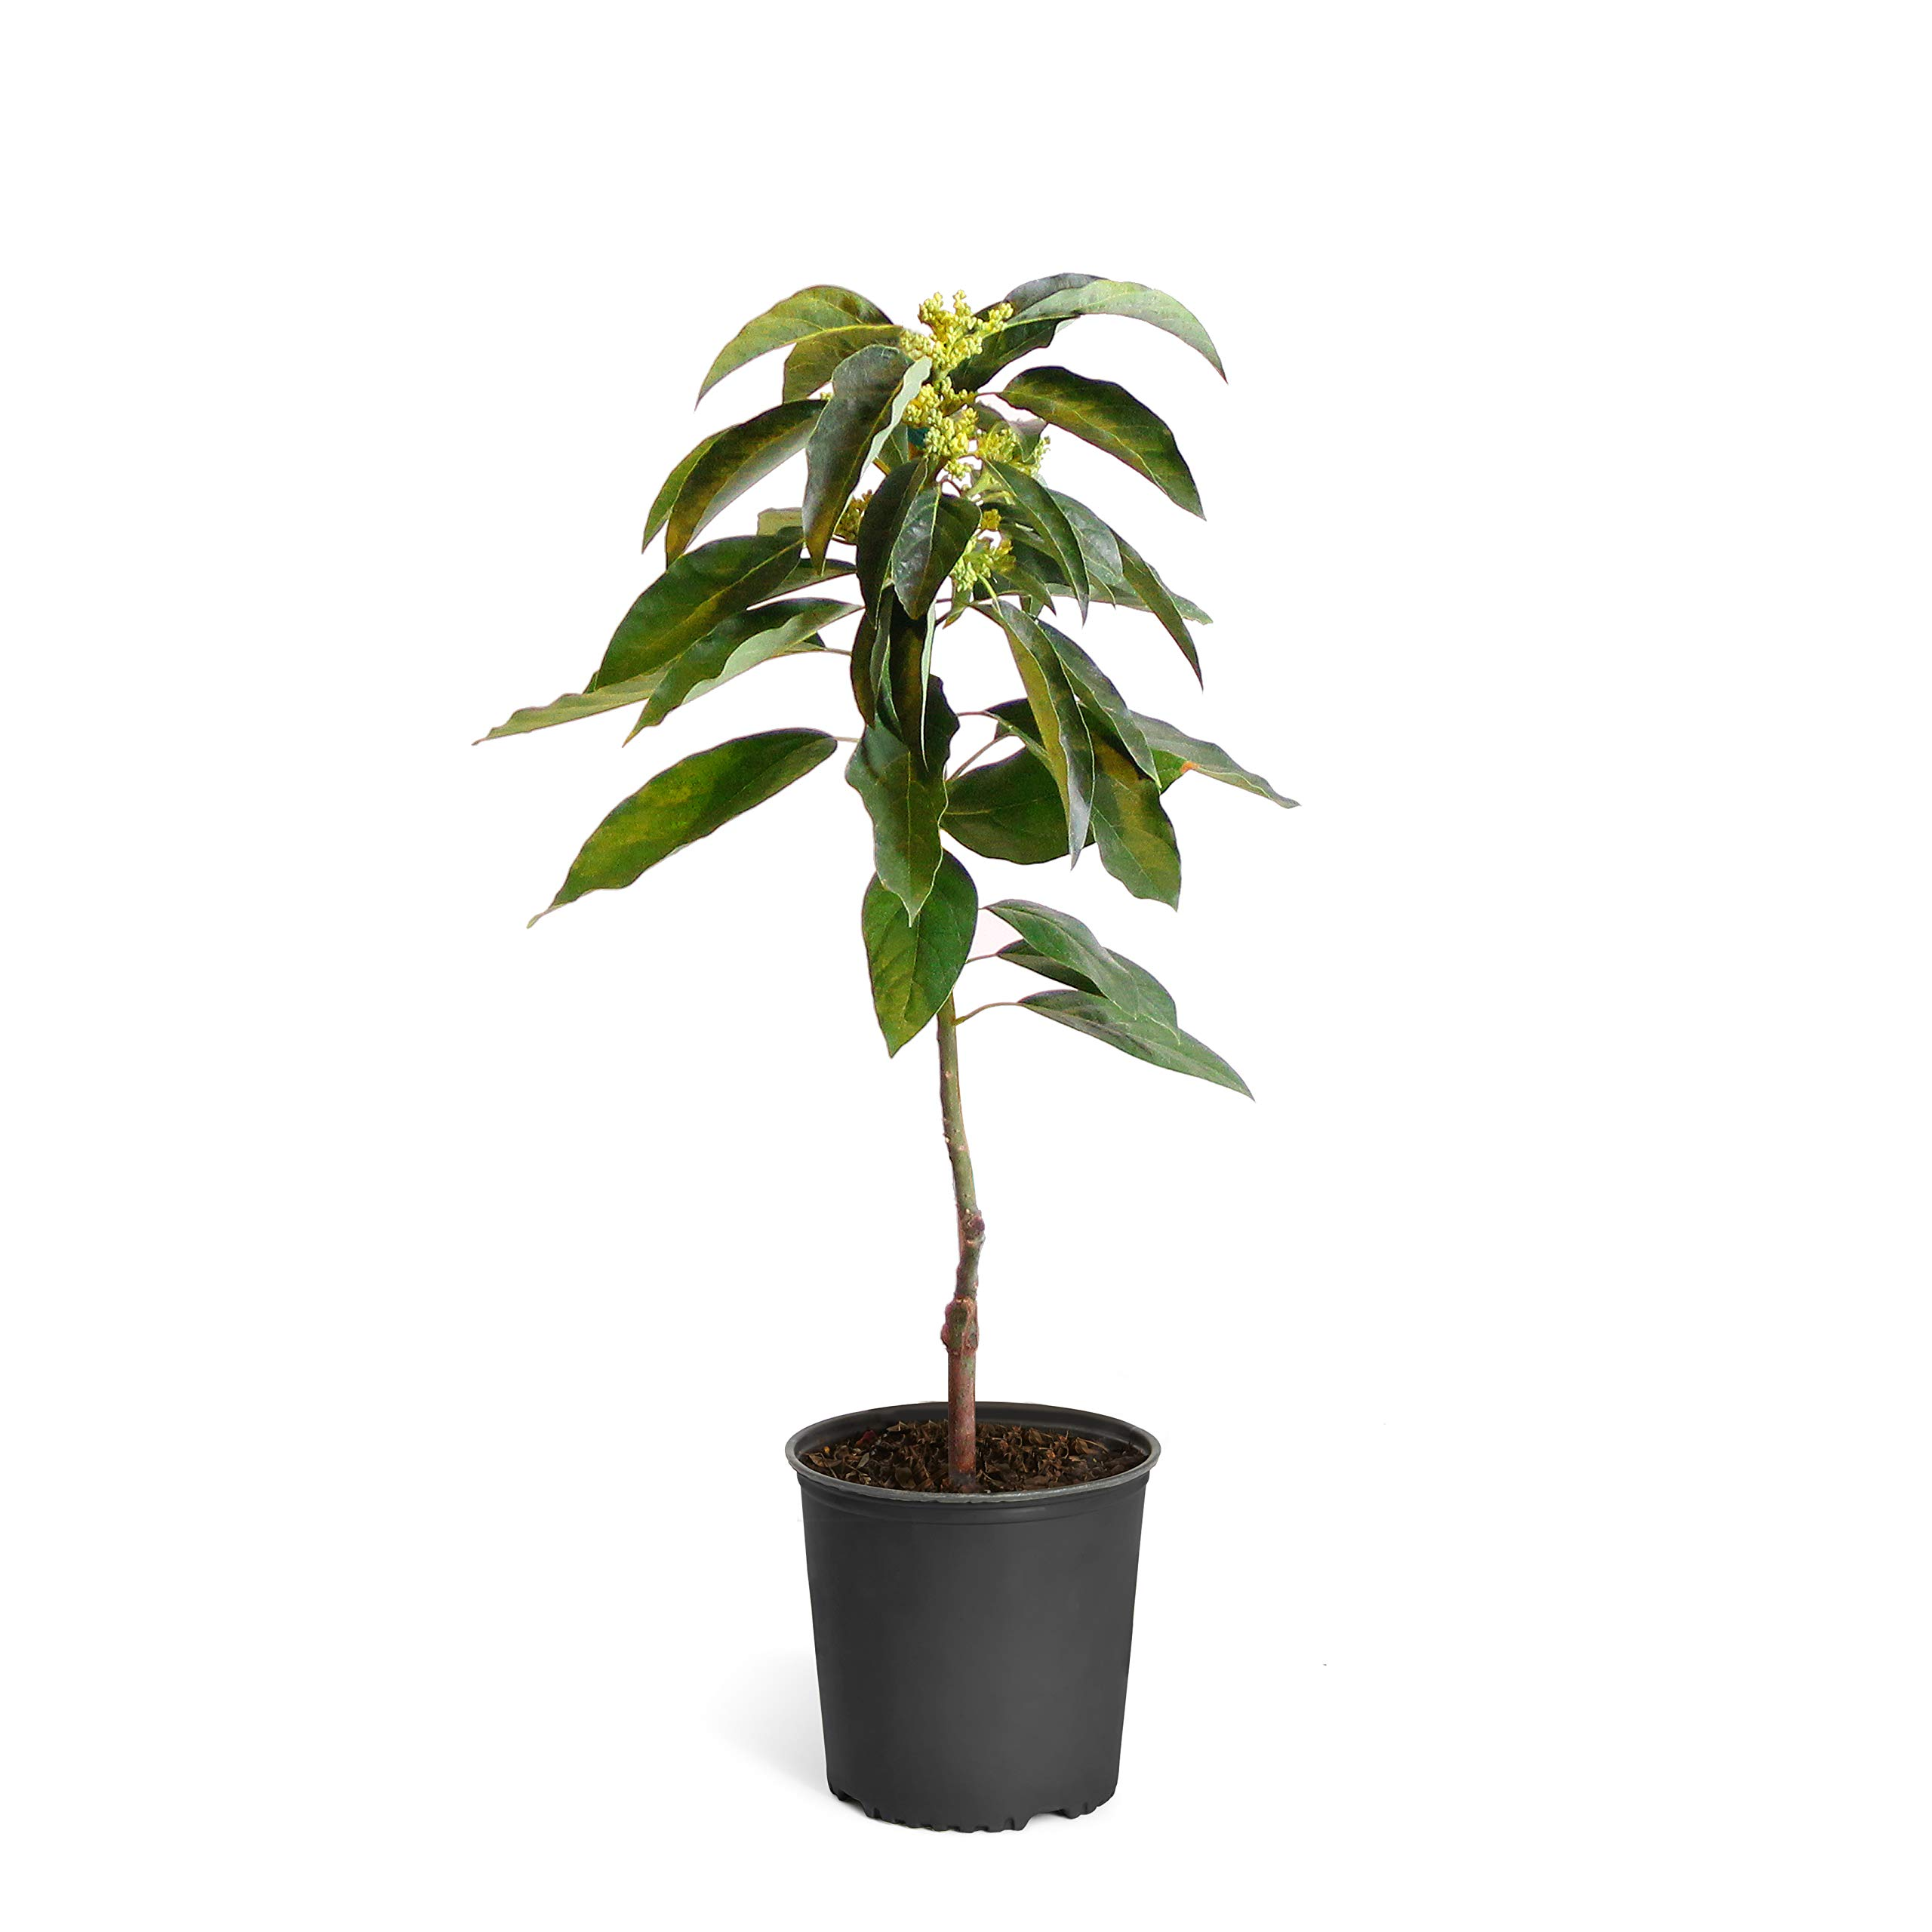 Brighter Blooms Cold Hardy Avocado Tree, 2-3 Ft. | Exotic, Delicious & Climate-Resilient | Greenhouse-Grown, Grafted (not Seed Grown) for Earliest Fruit | No Shipping to AZ by Brighter Blooms